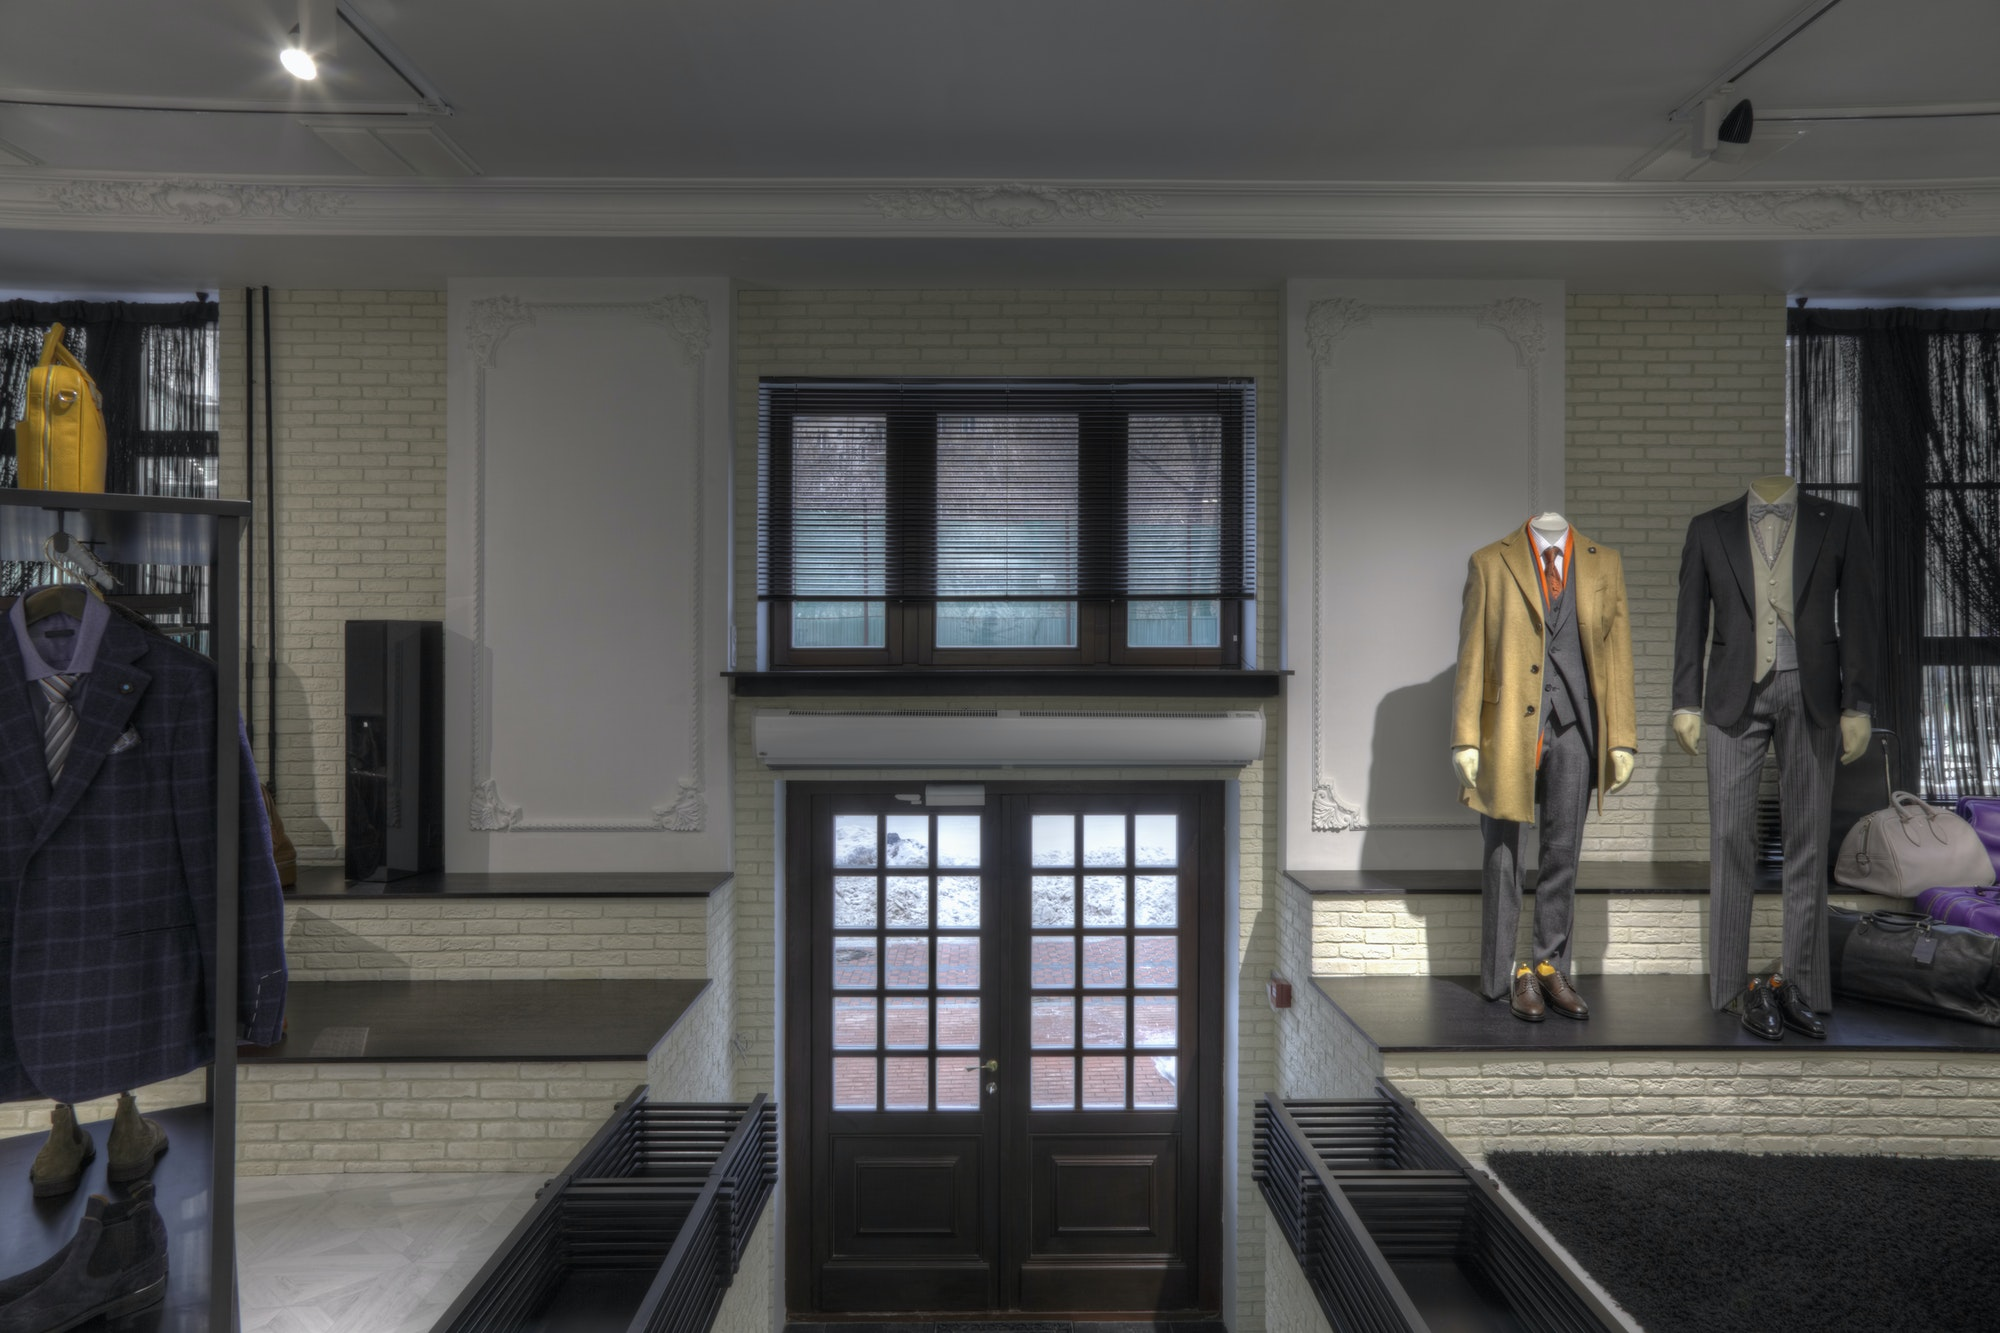 Suits on mannequins near doorway of clothing store for men